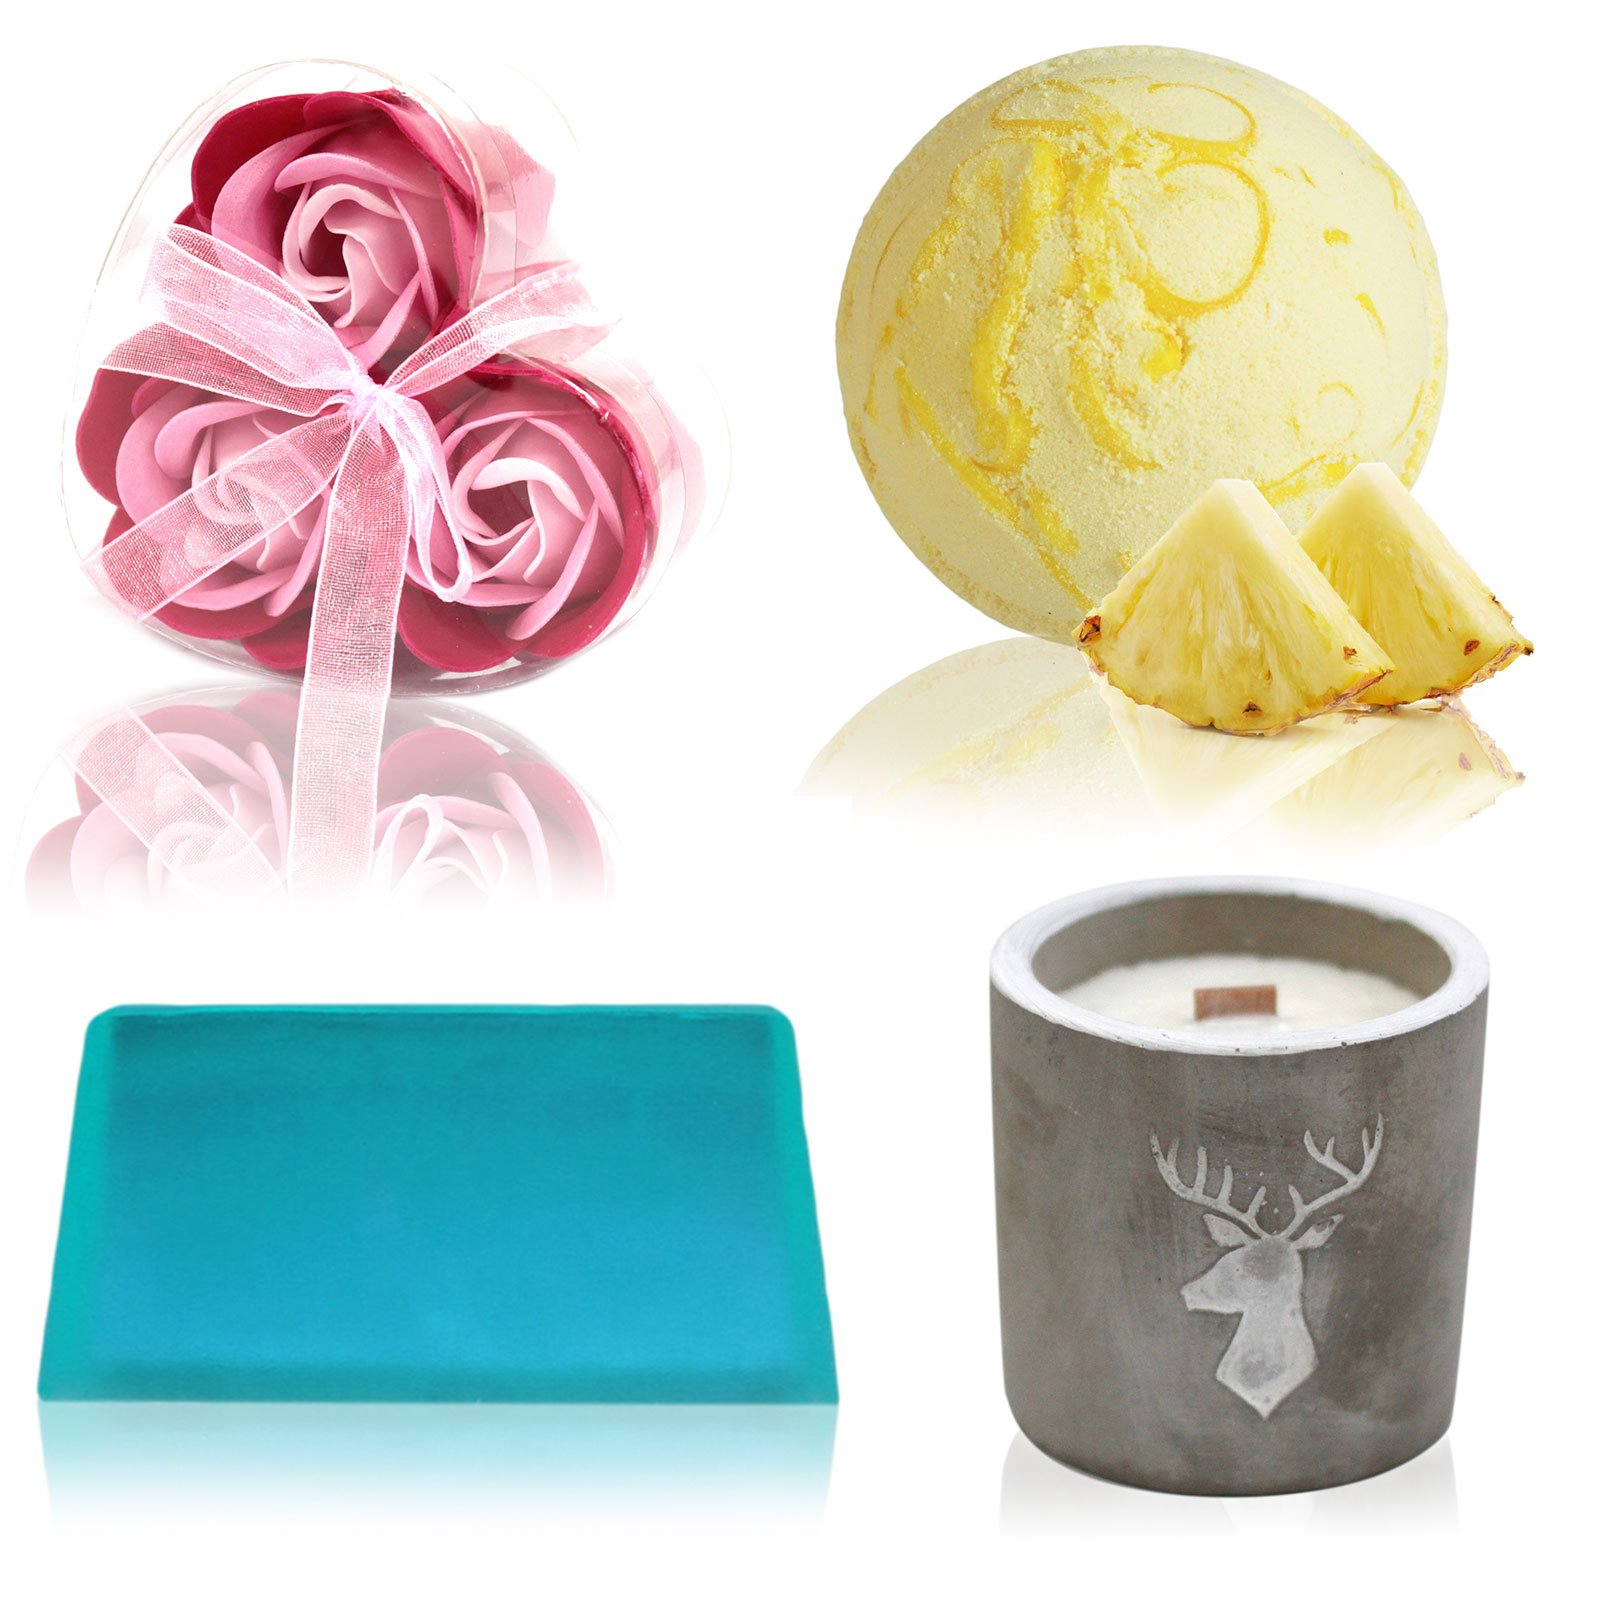 Bath-Bomb-Soap-Flower-Soap-and-Candle-Treat-Box